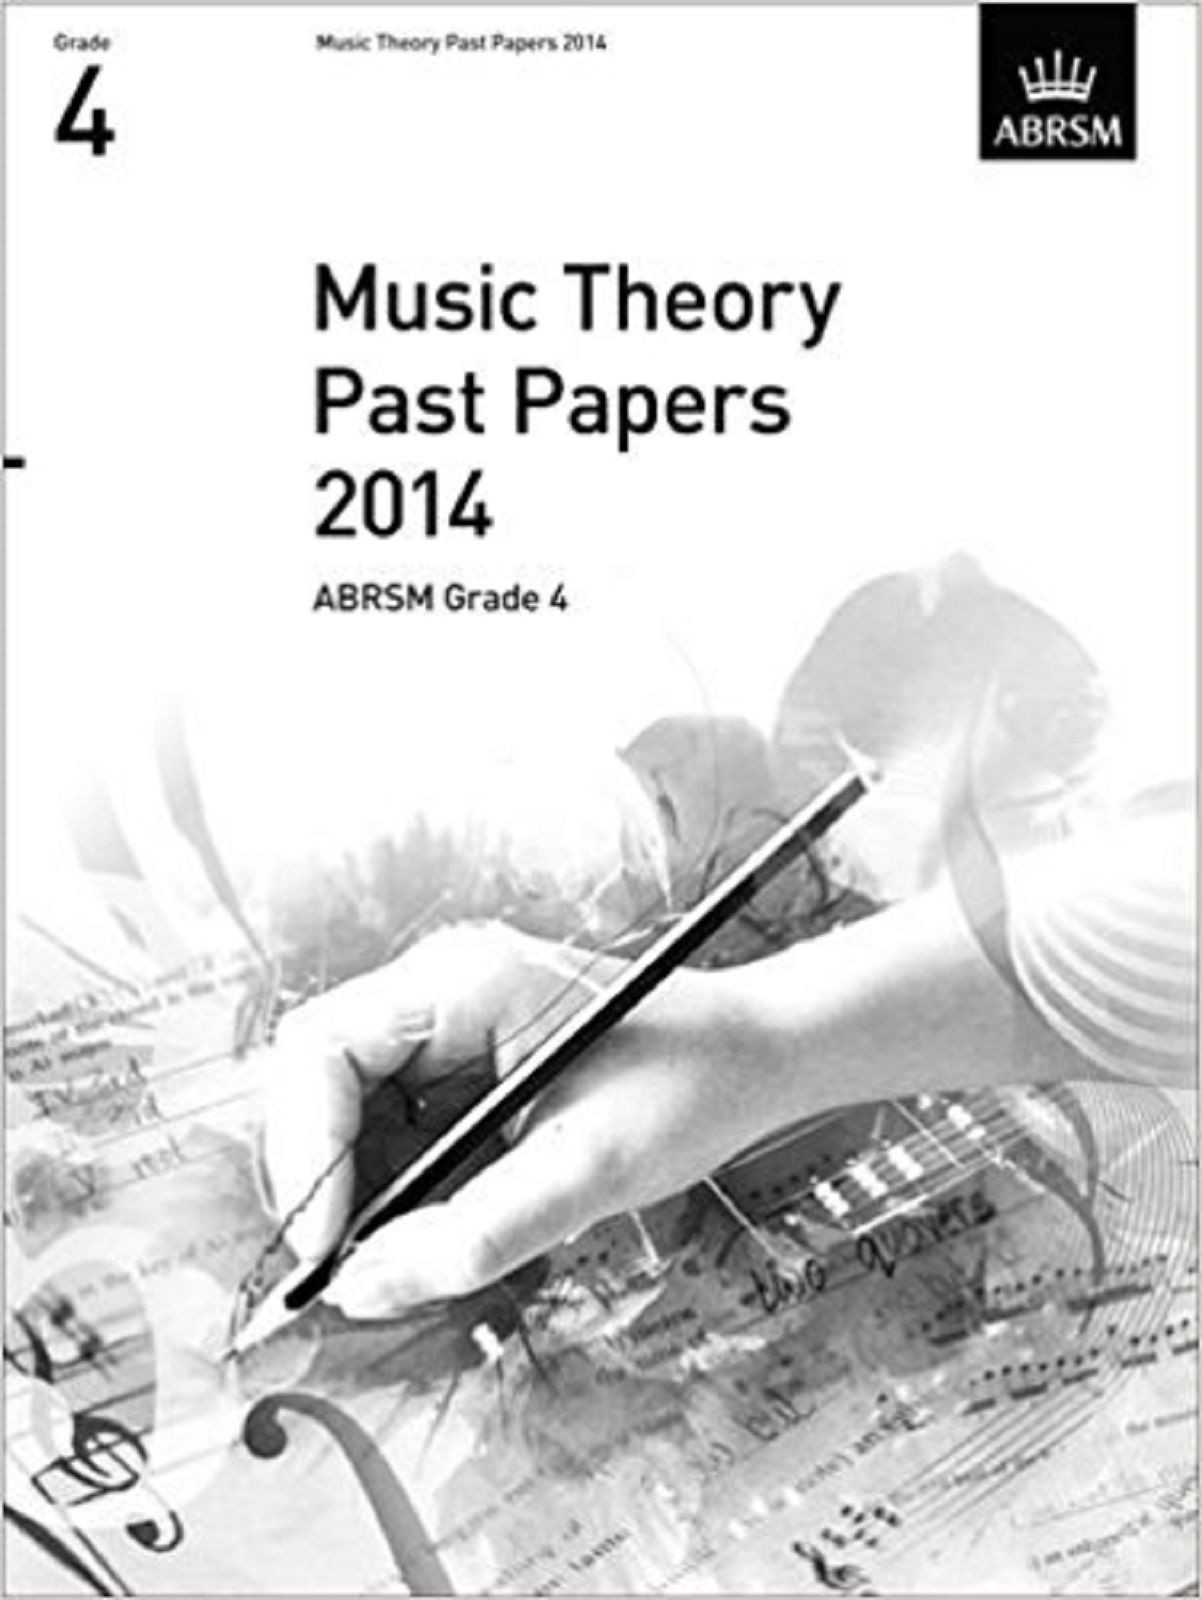 ABRSM Music Theory Past Papers 2014 Grade 4 Exam Practice Book S69